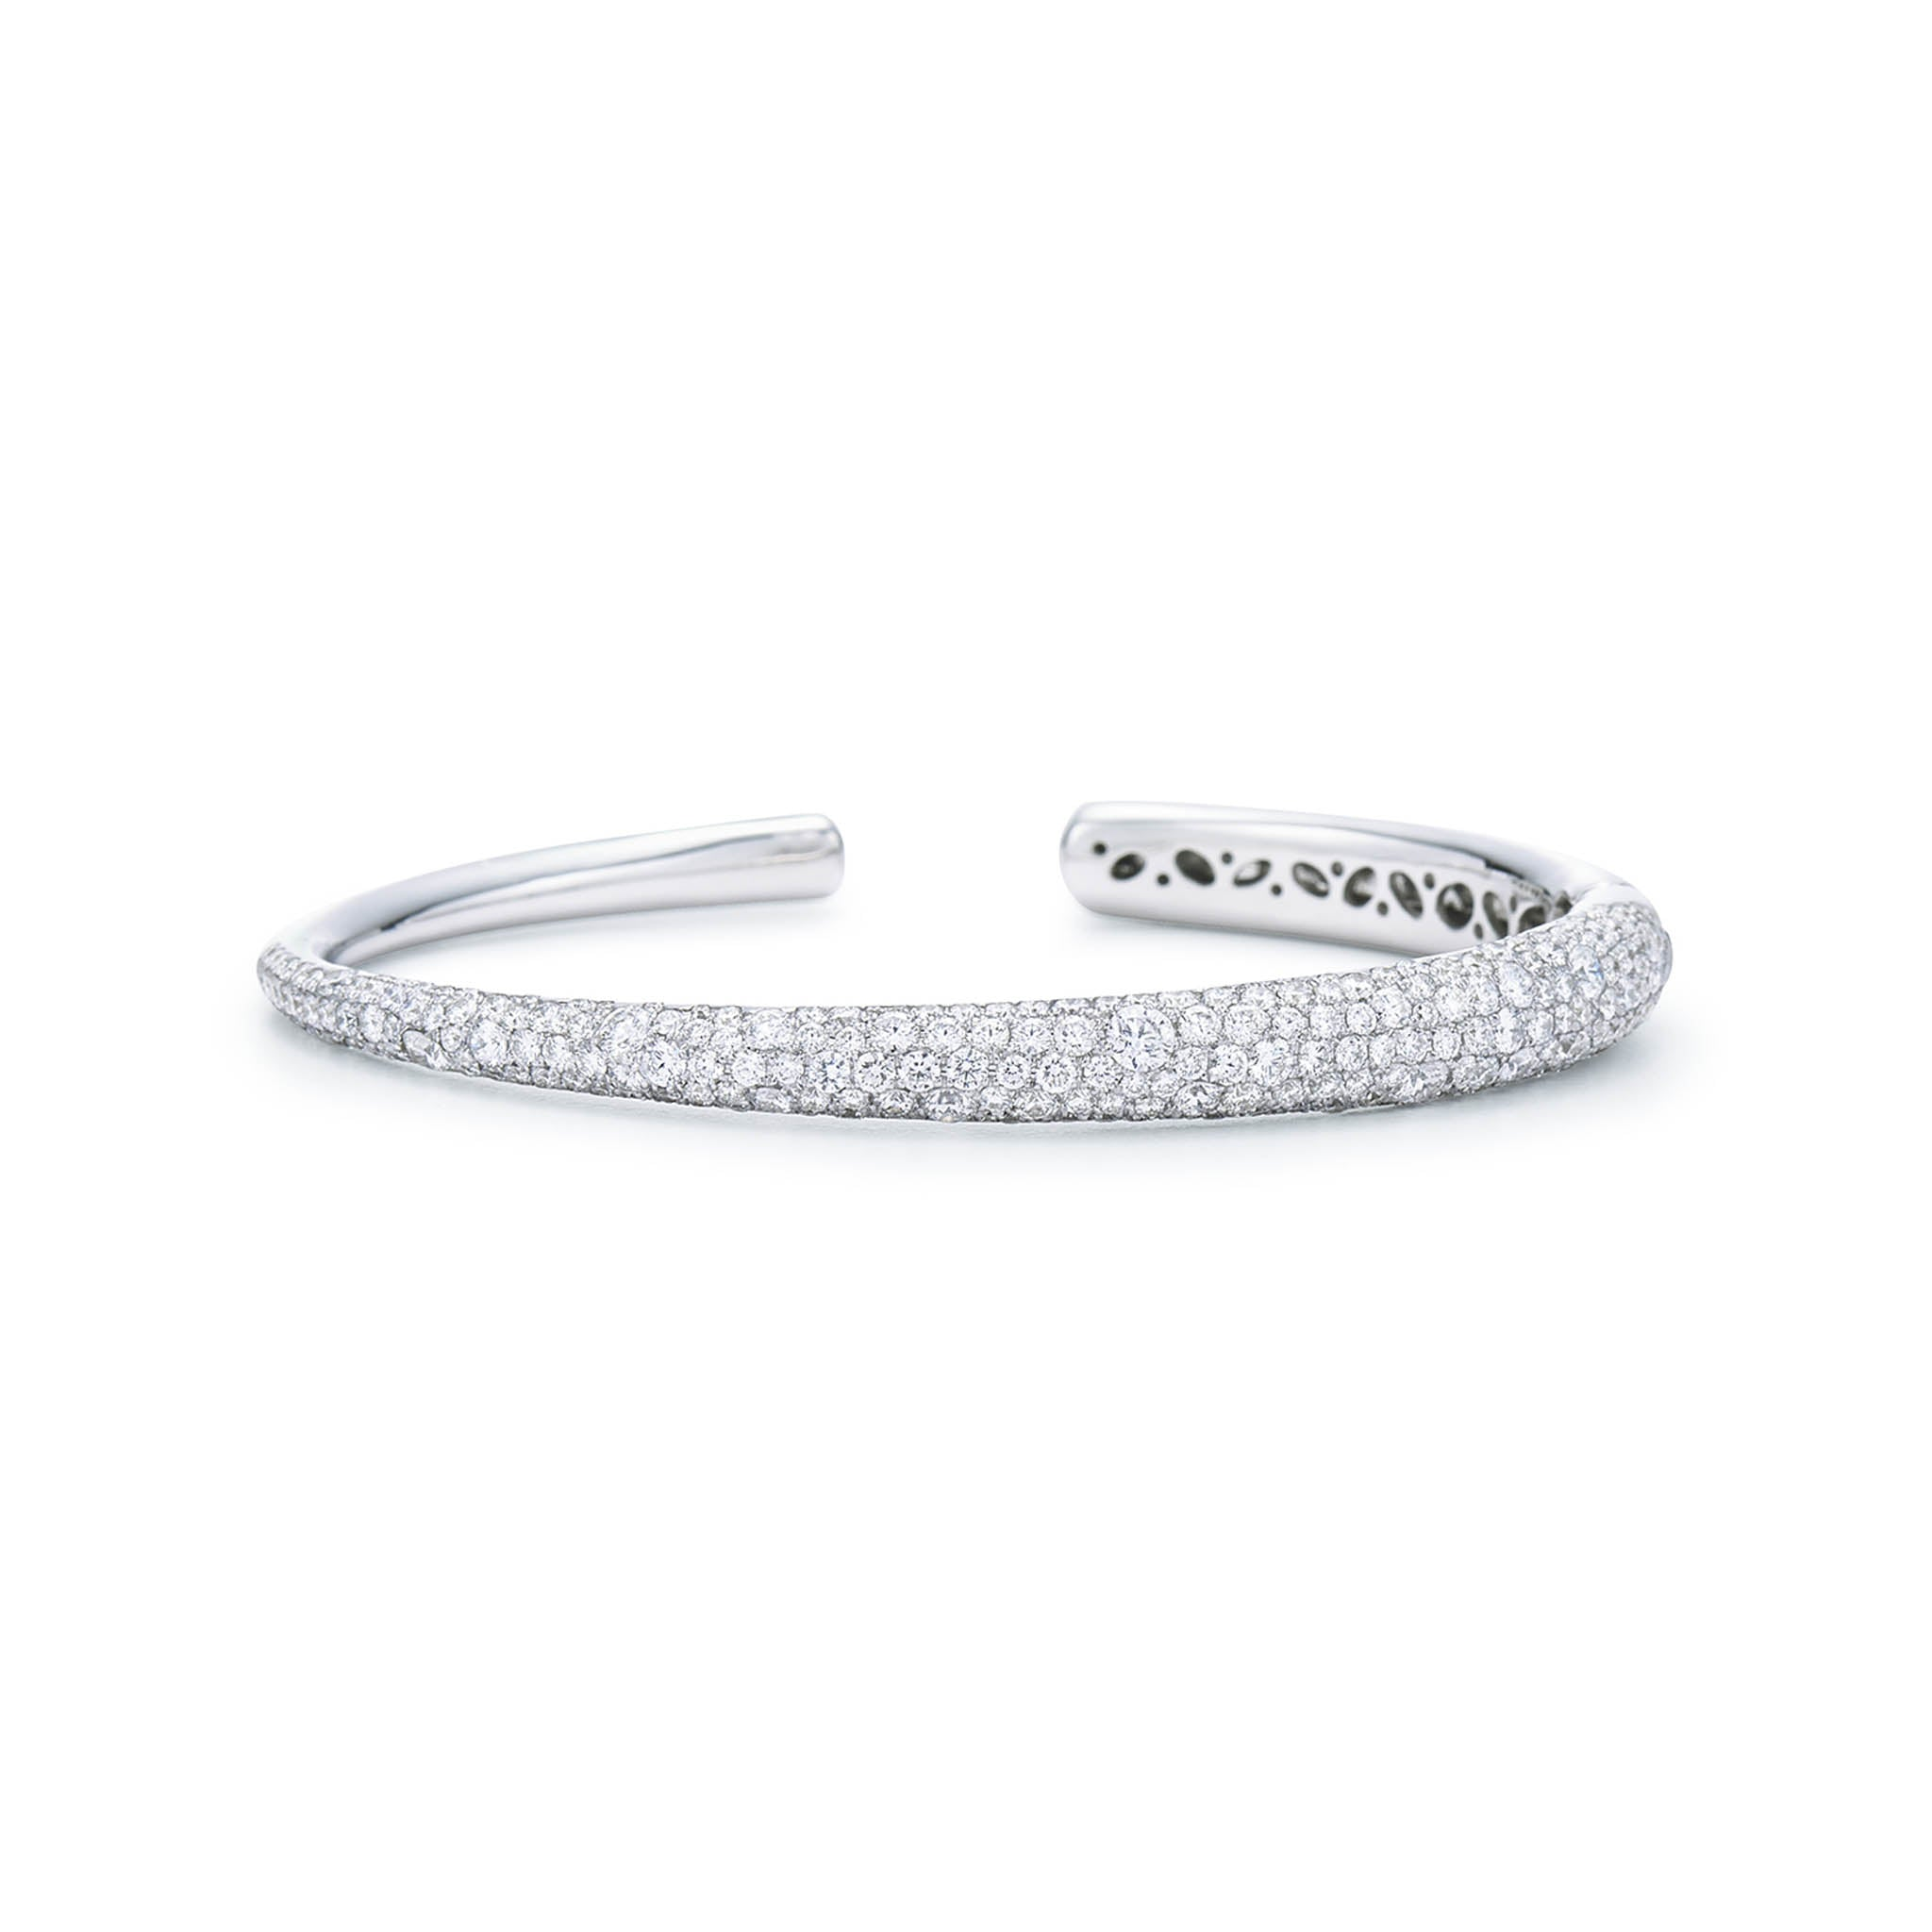 18k White Gold Diamond Pave Cuff